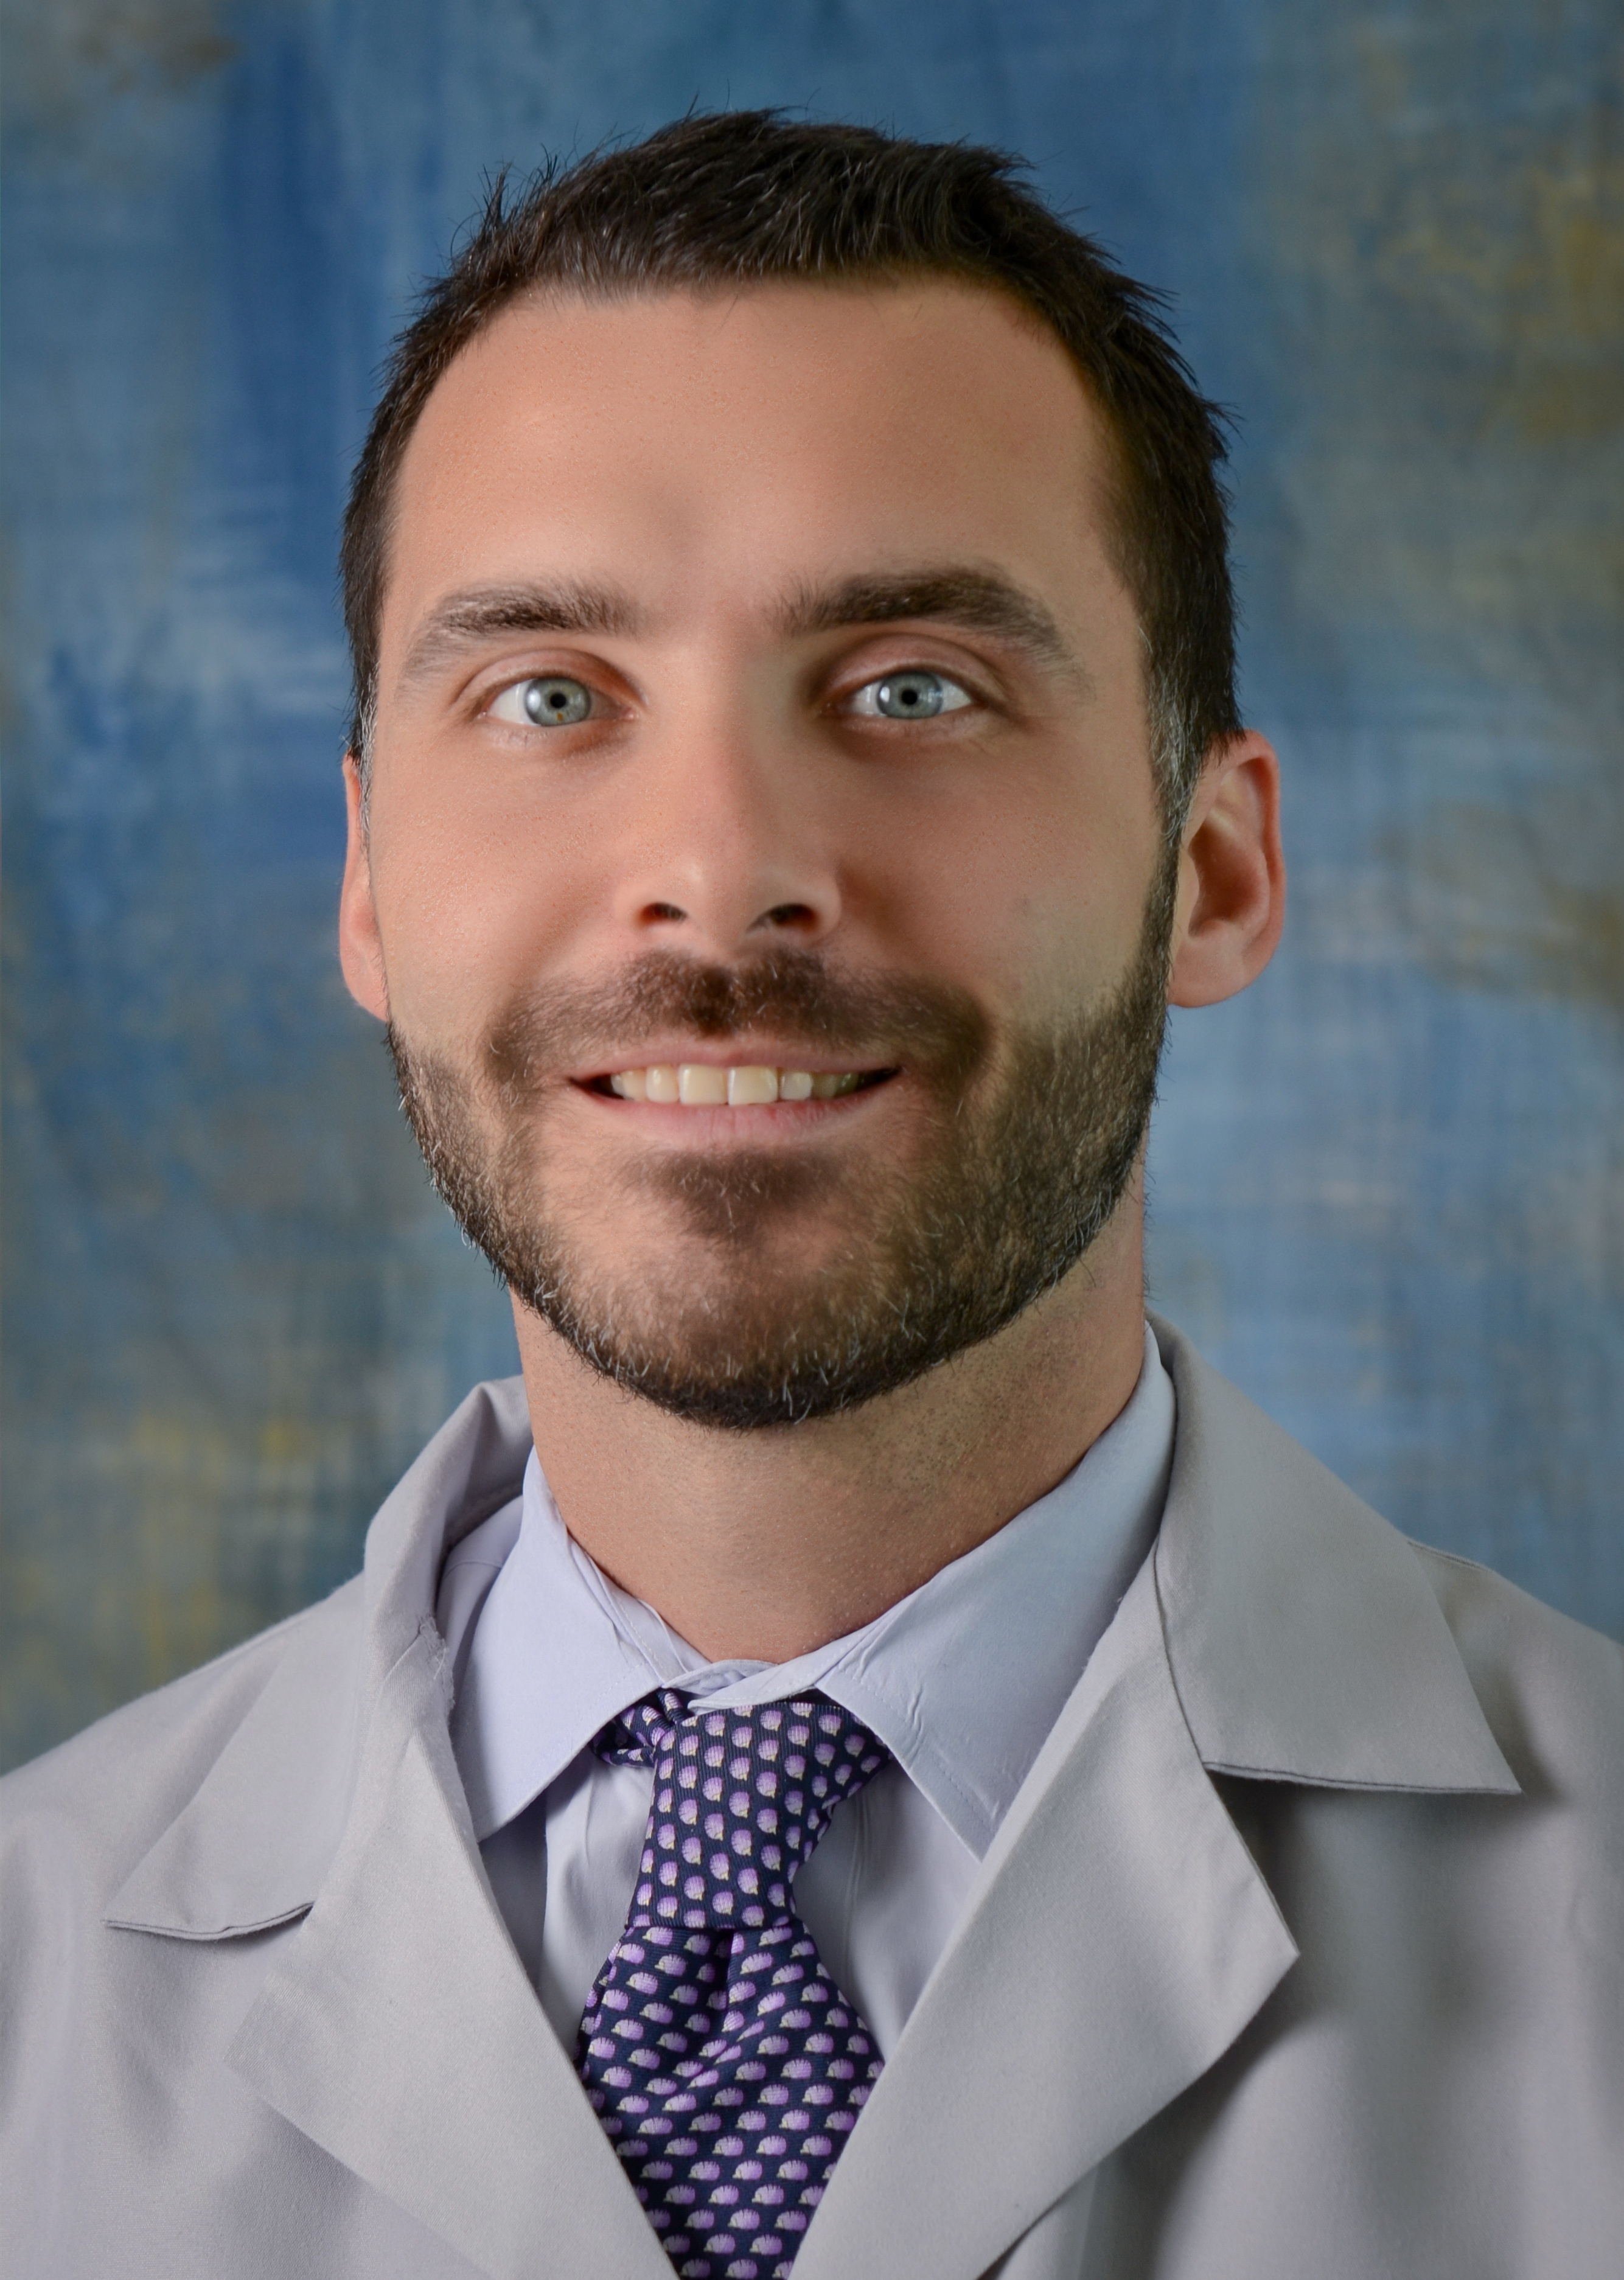 Mark A. Wille, MD